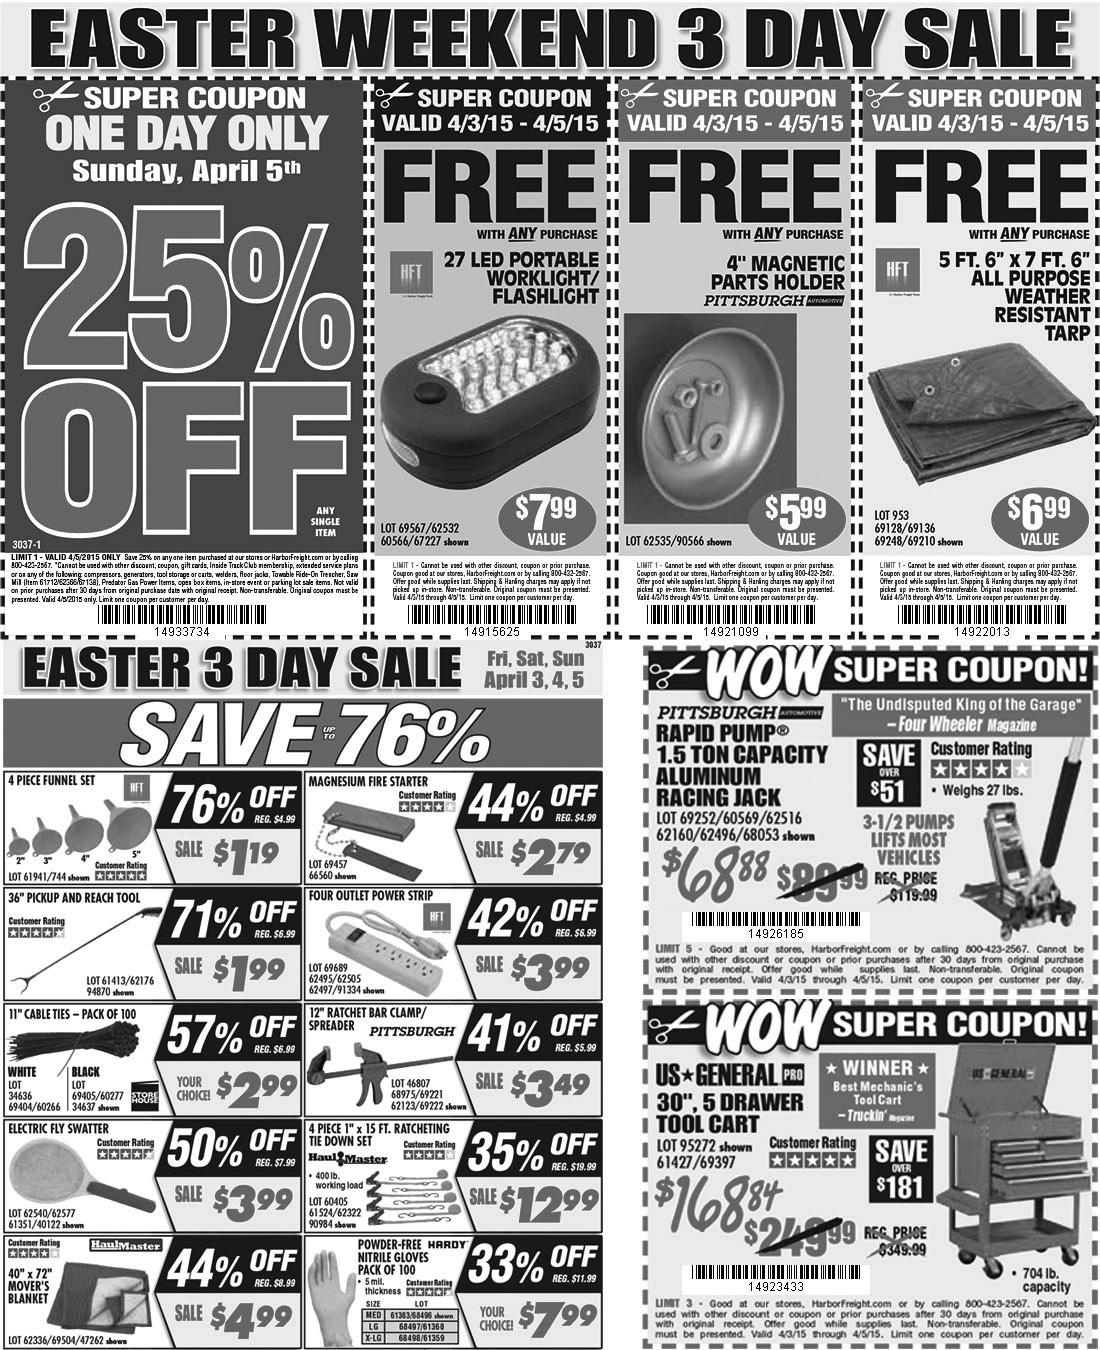 Harbor Freight Coupon December 2017 25% off a single item & more at Harbor Freight Tools, or online via promo code 14933734